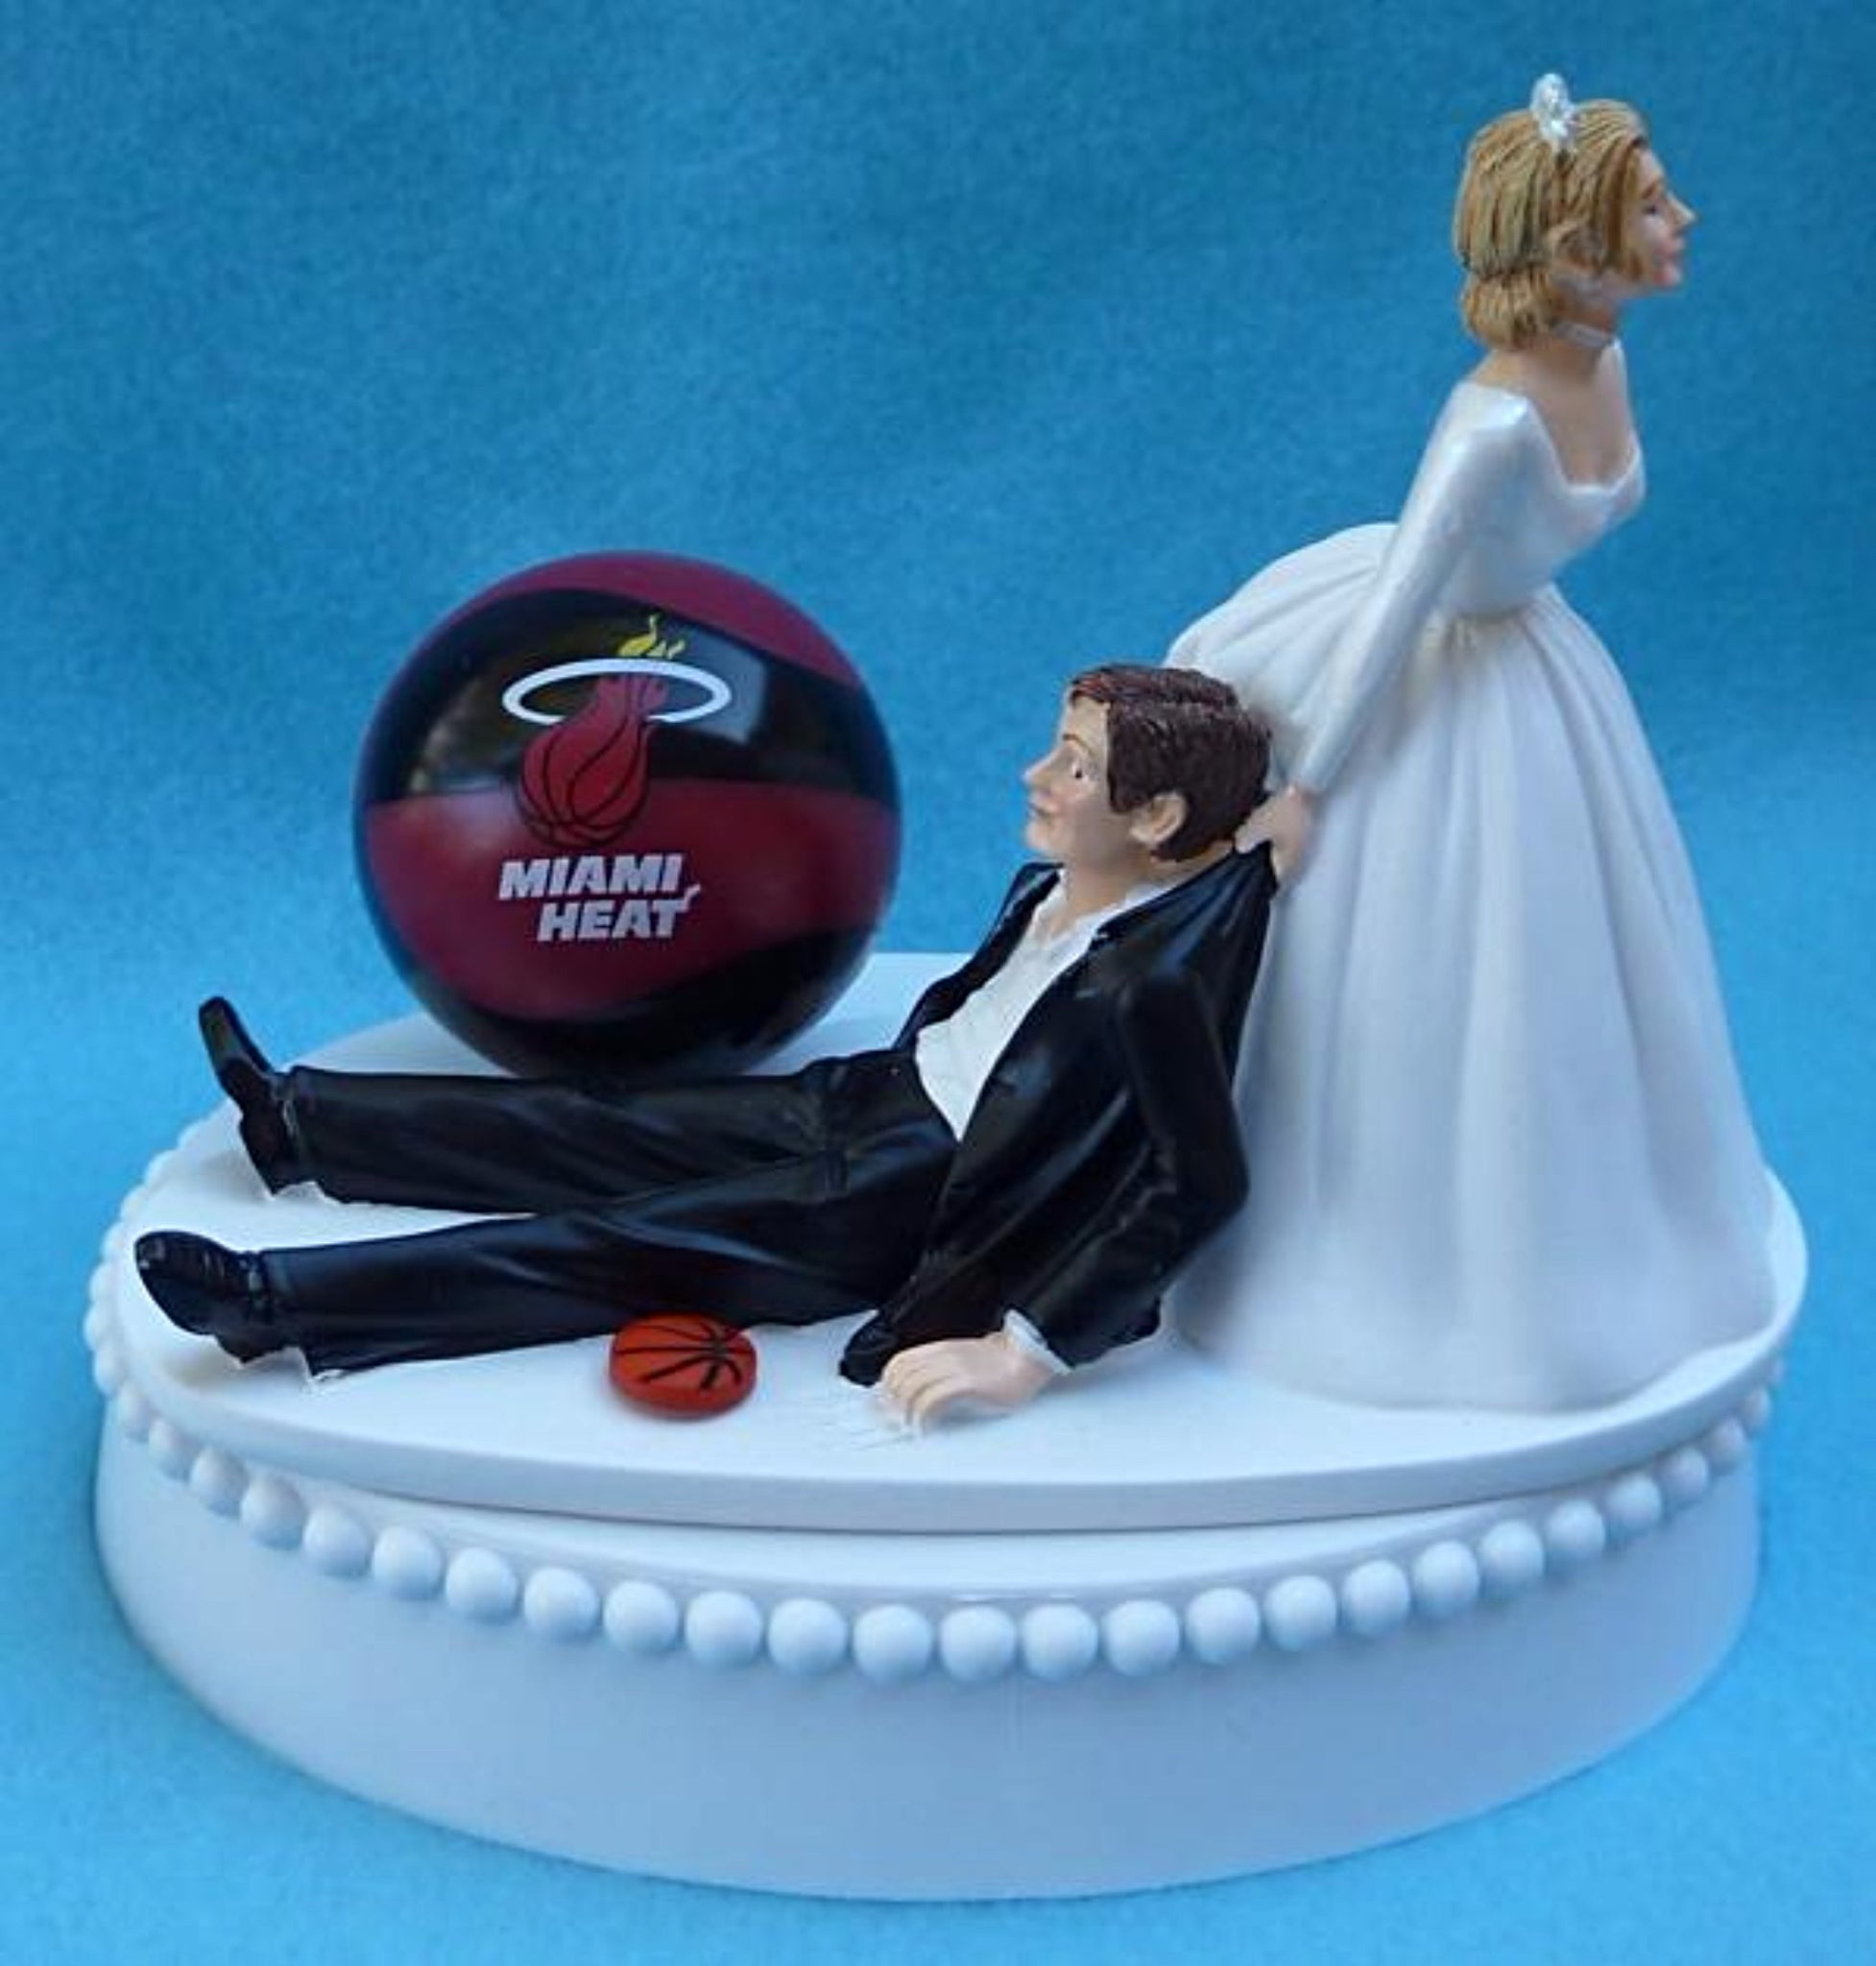 Miami Heat wedding cake topper NBA basketball sports fans fun bride groom dragging drags funny unique original reception gift idea item